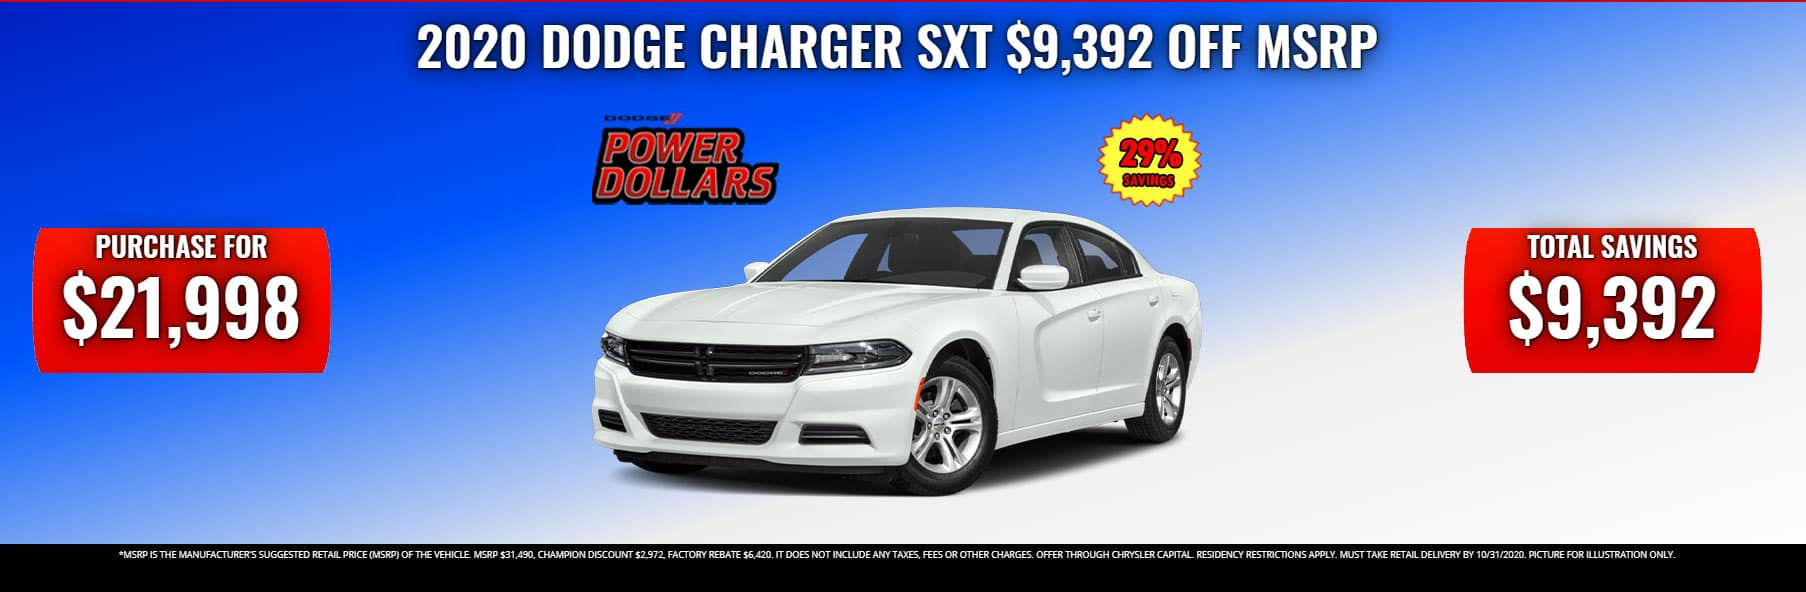 Charger 10192020